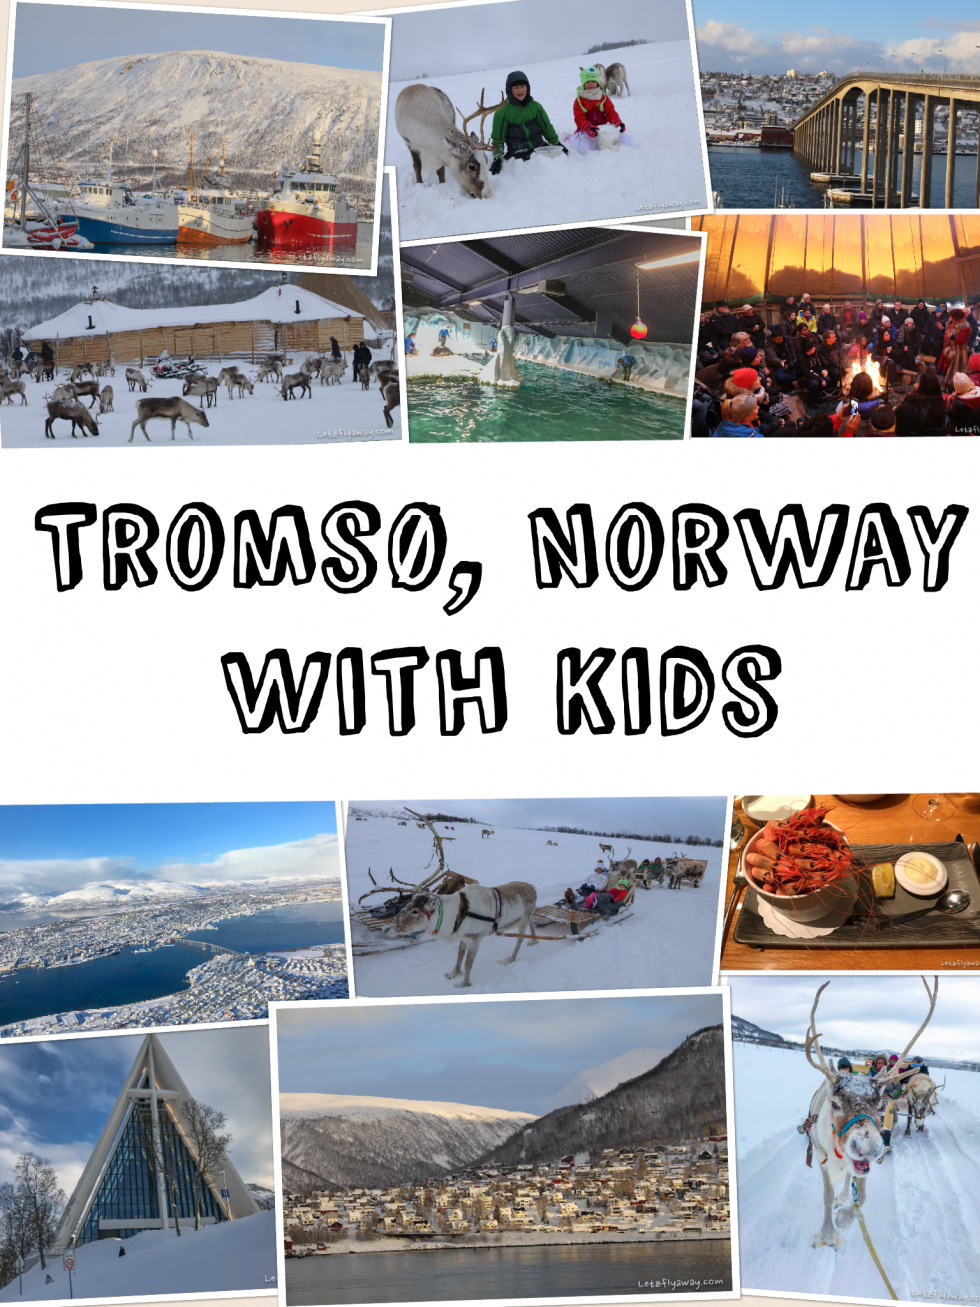 Tromso with kids